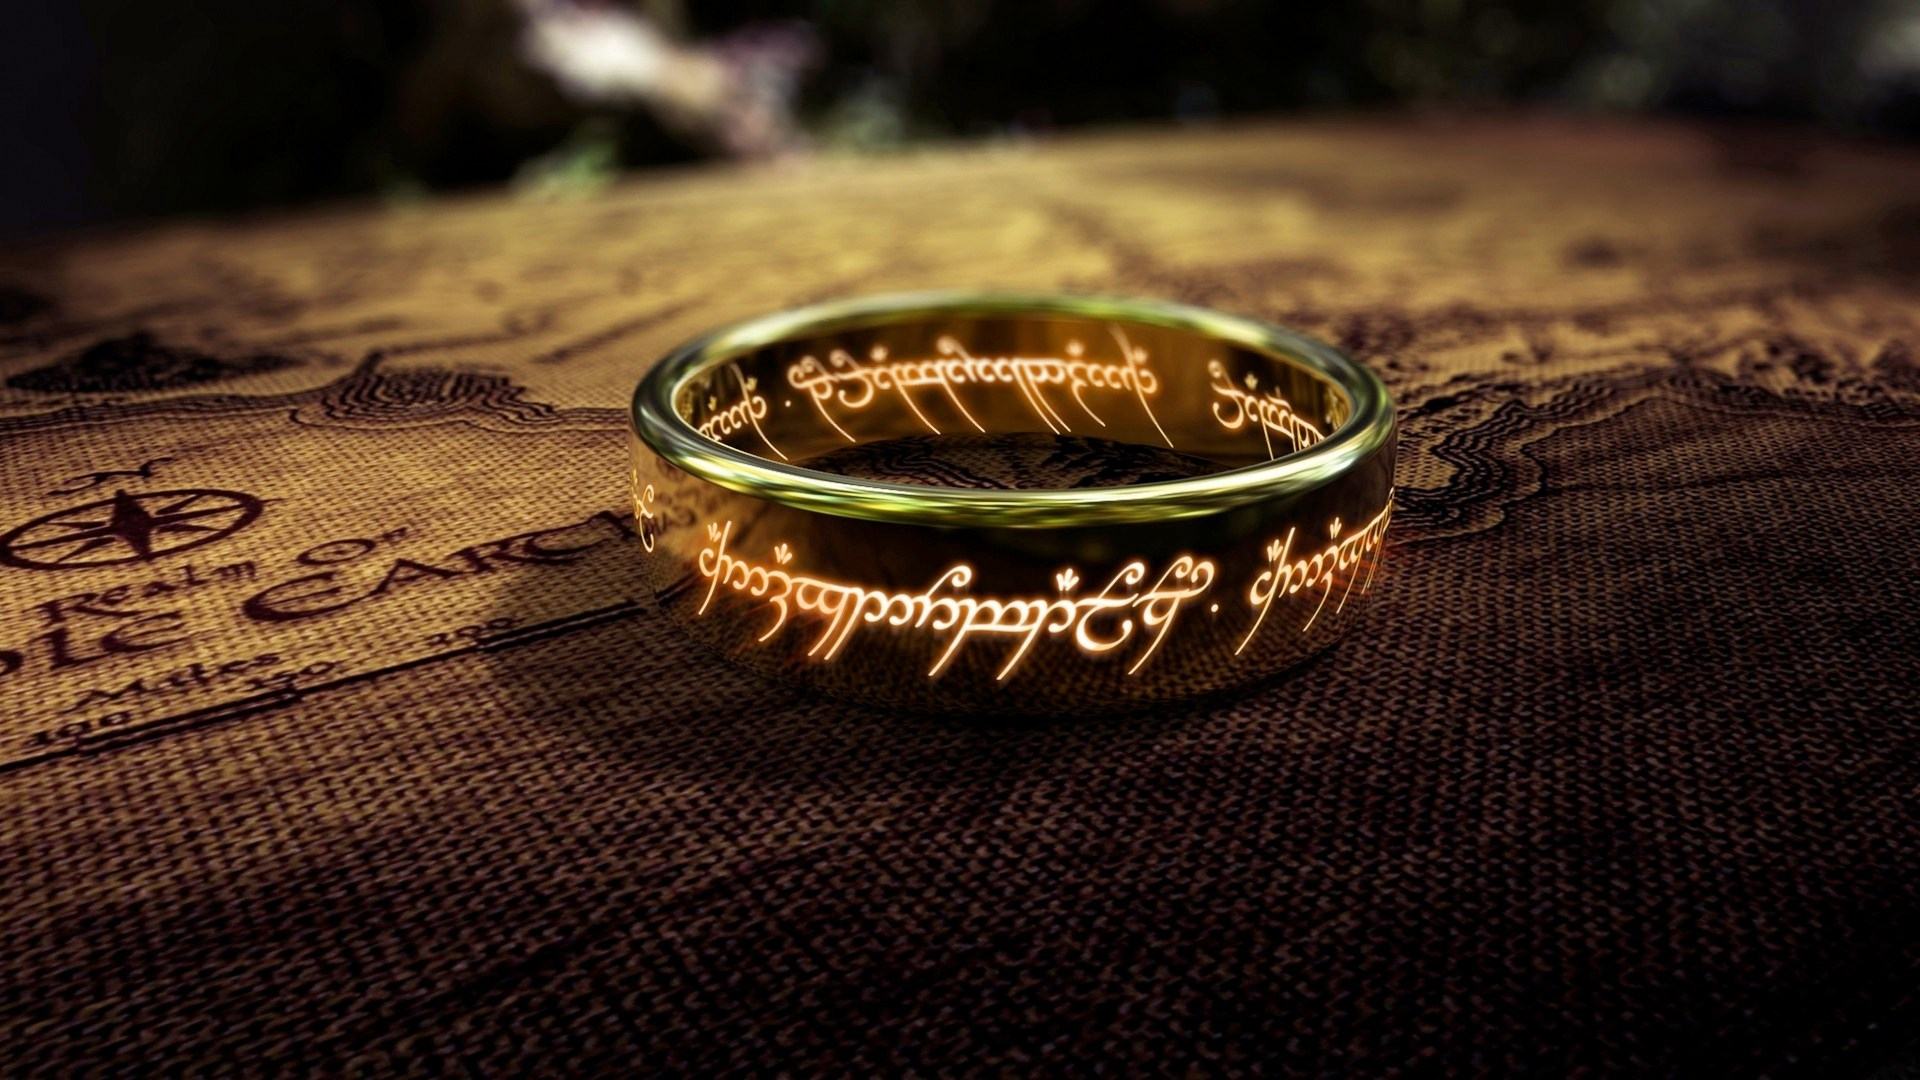 First reports and pics from the set of Amazon's Lord of the Rings show